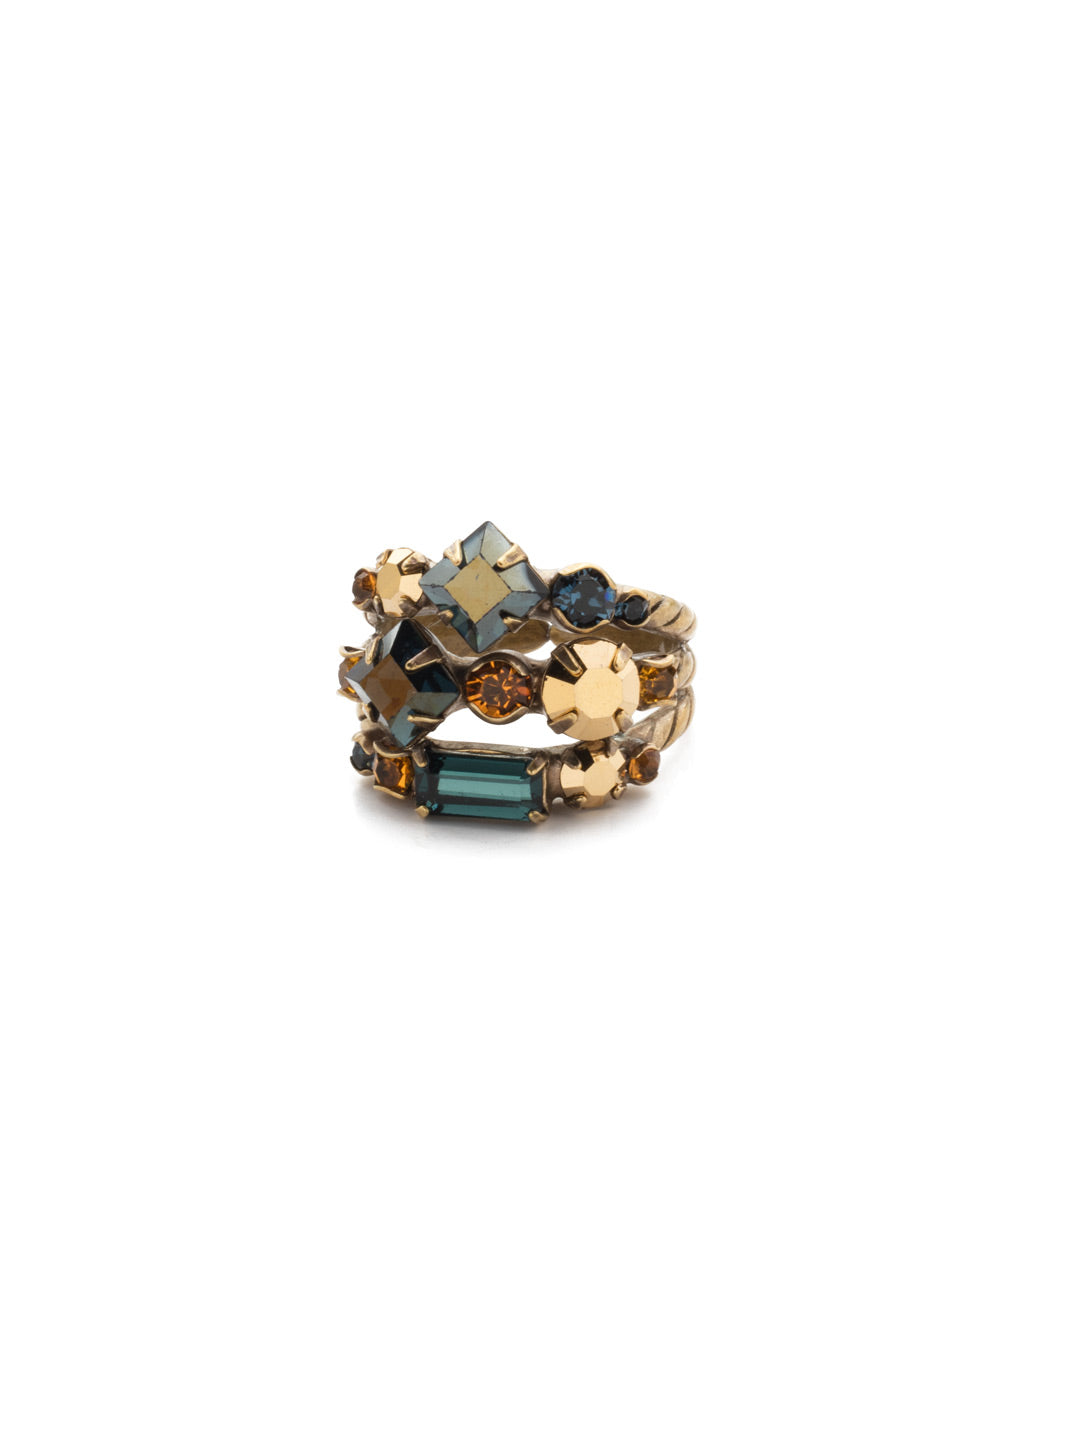 Sedge Stacked Ring - RDX1AGLNA